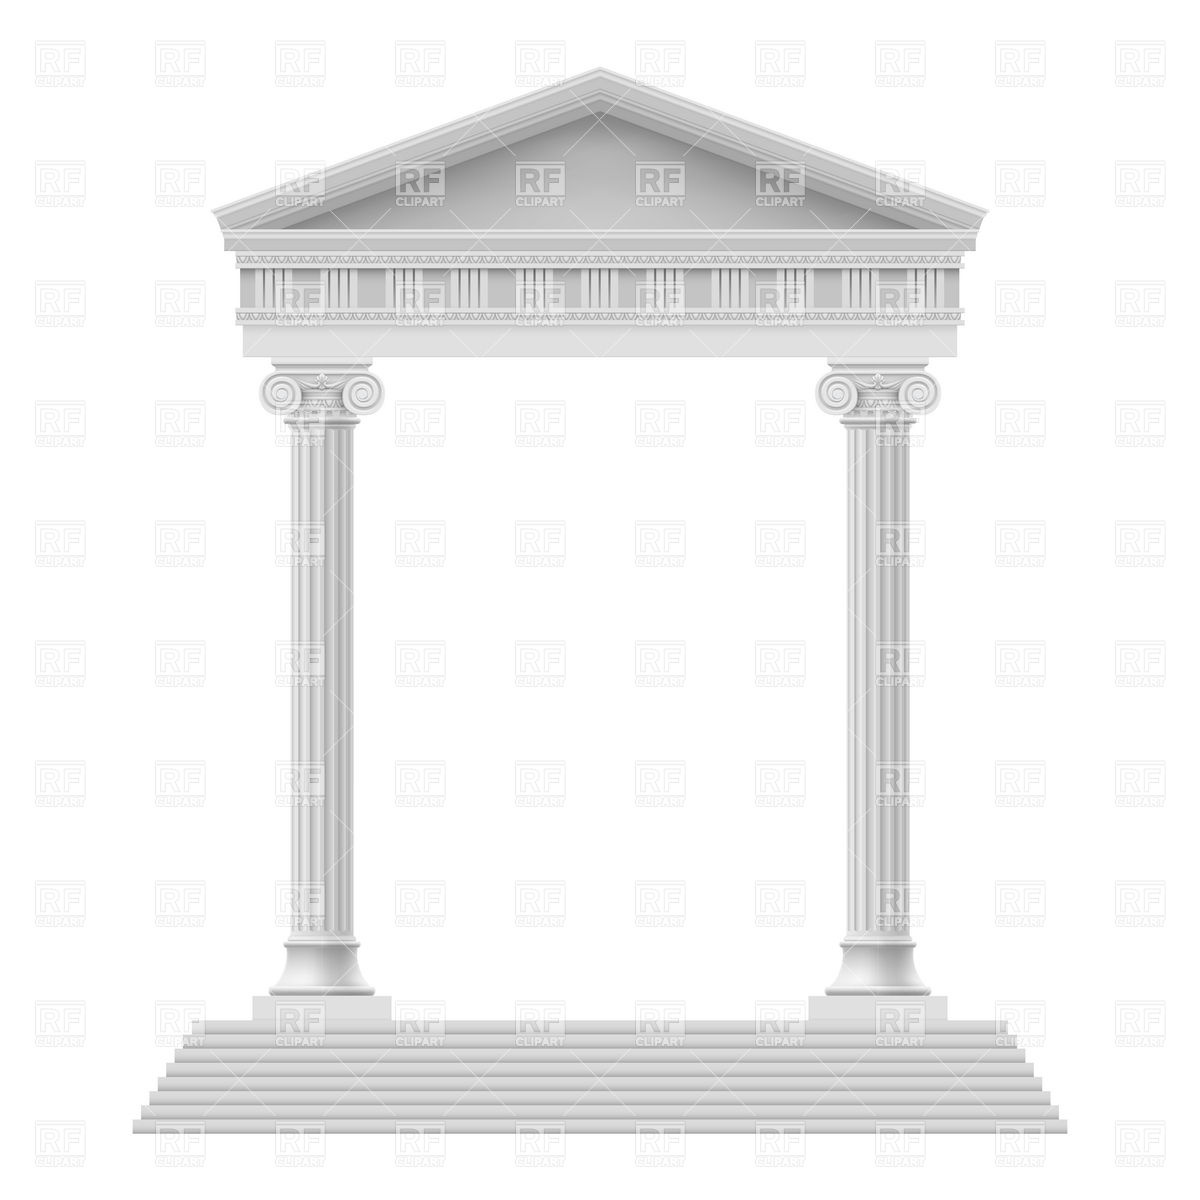 Portico an ancient temple with colonnade Vector Image #6991.